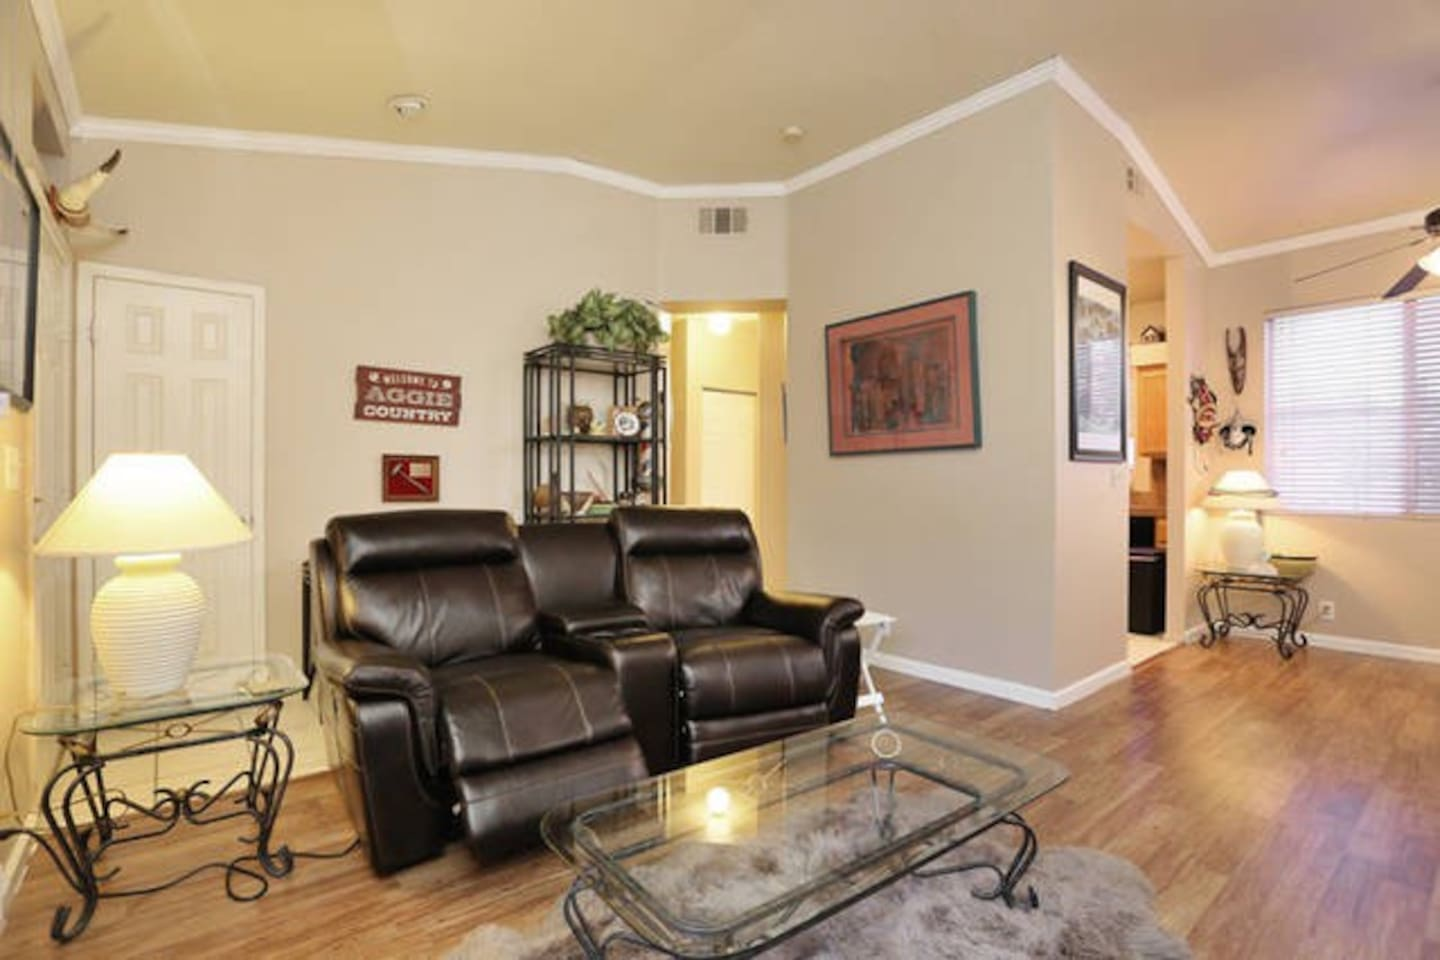 1 B/R Condo 2 miles West of MGM